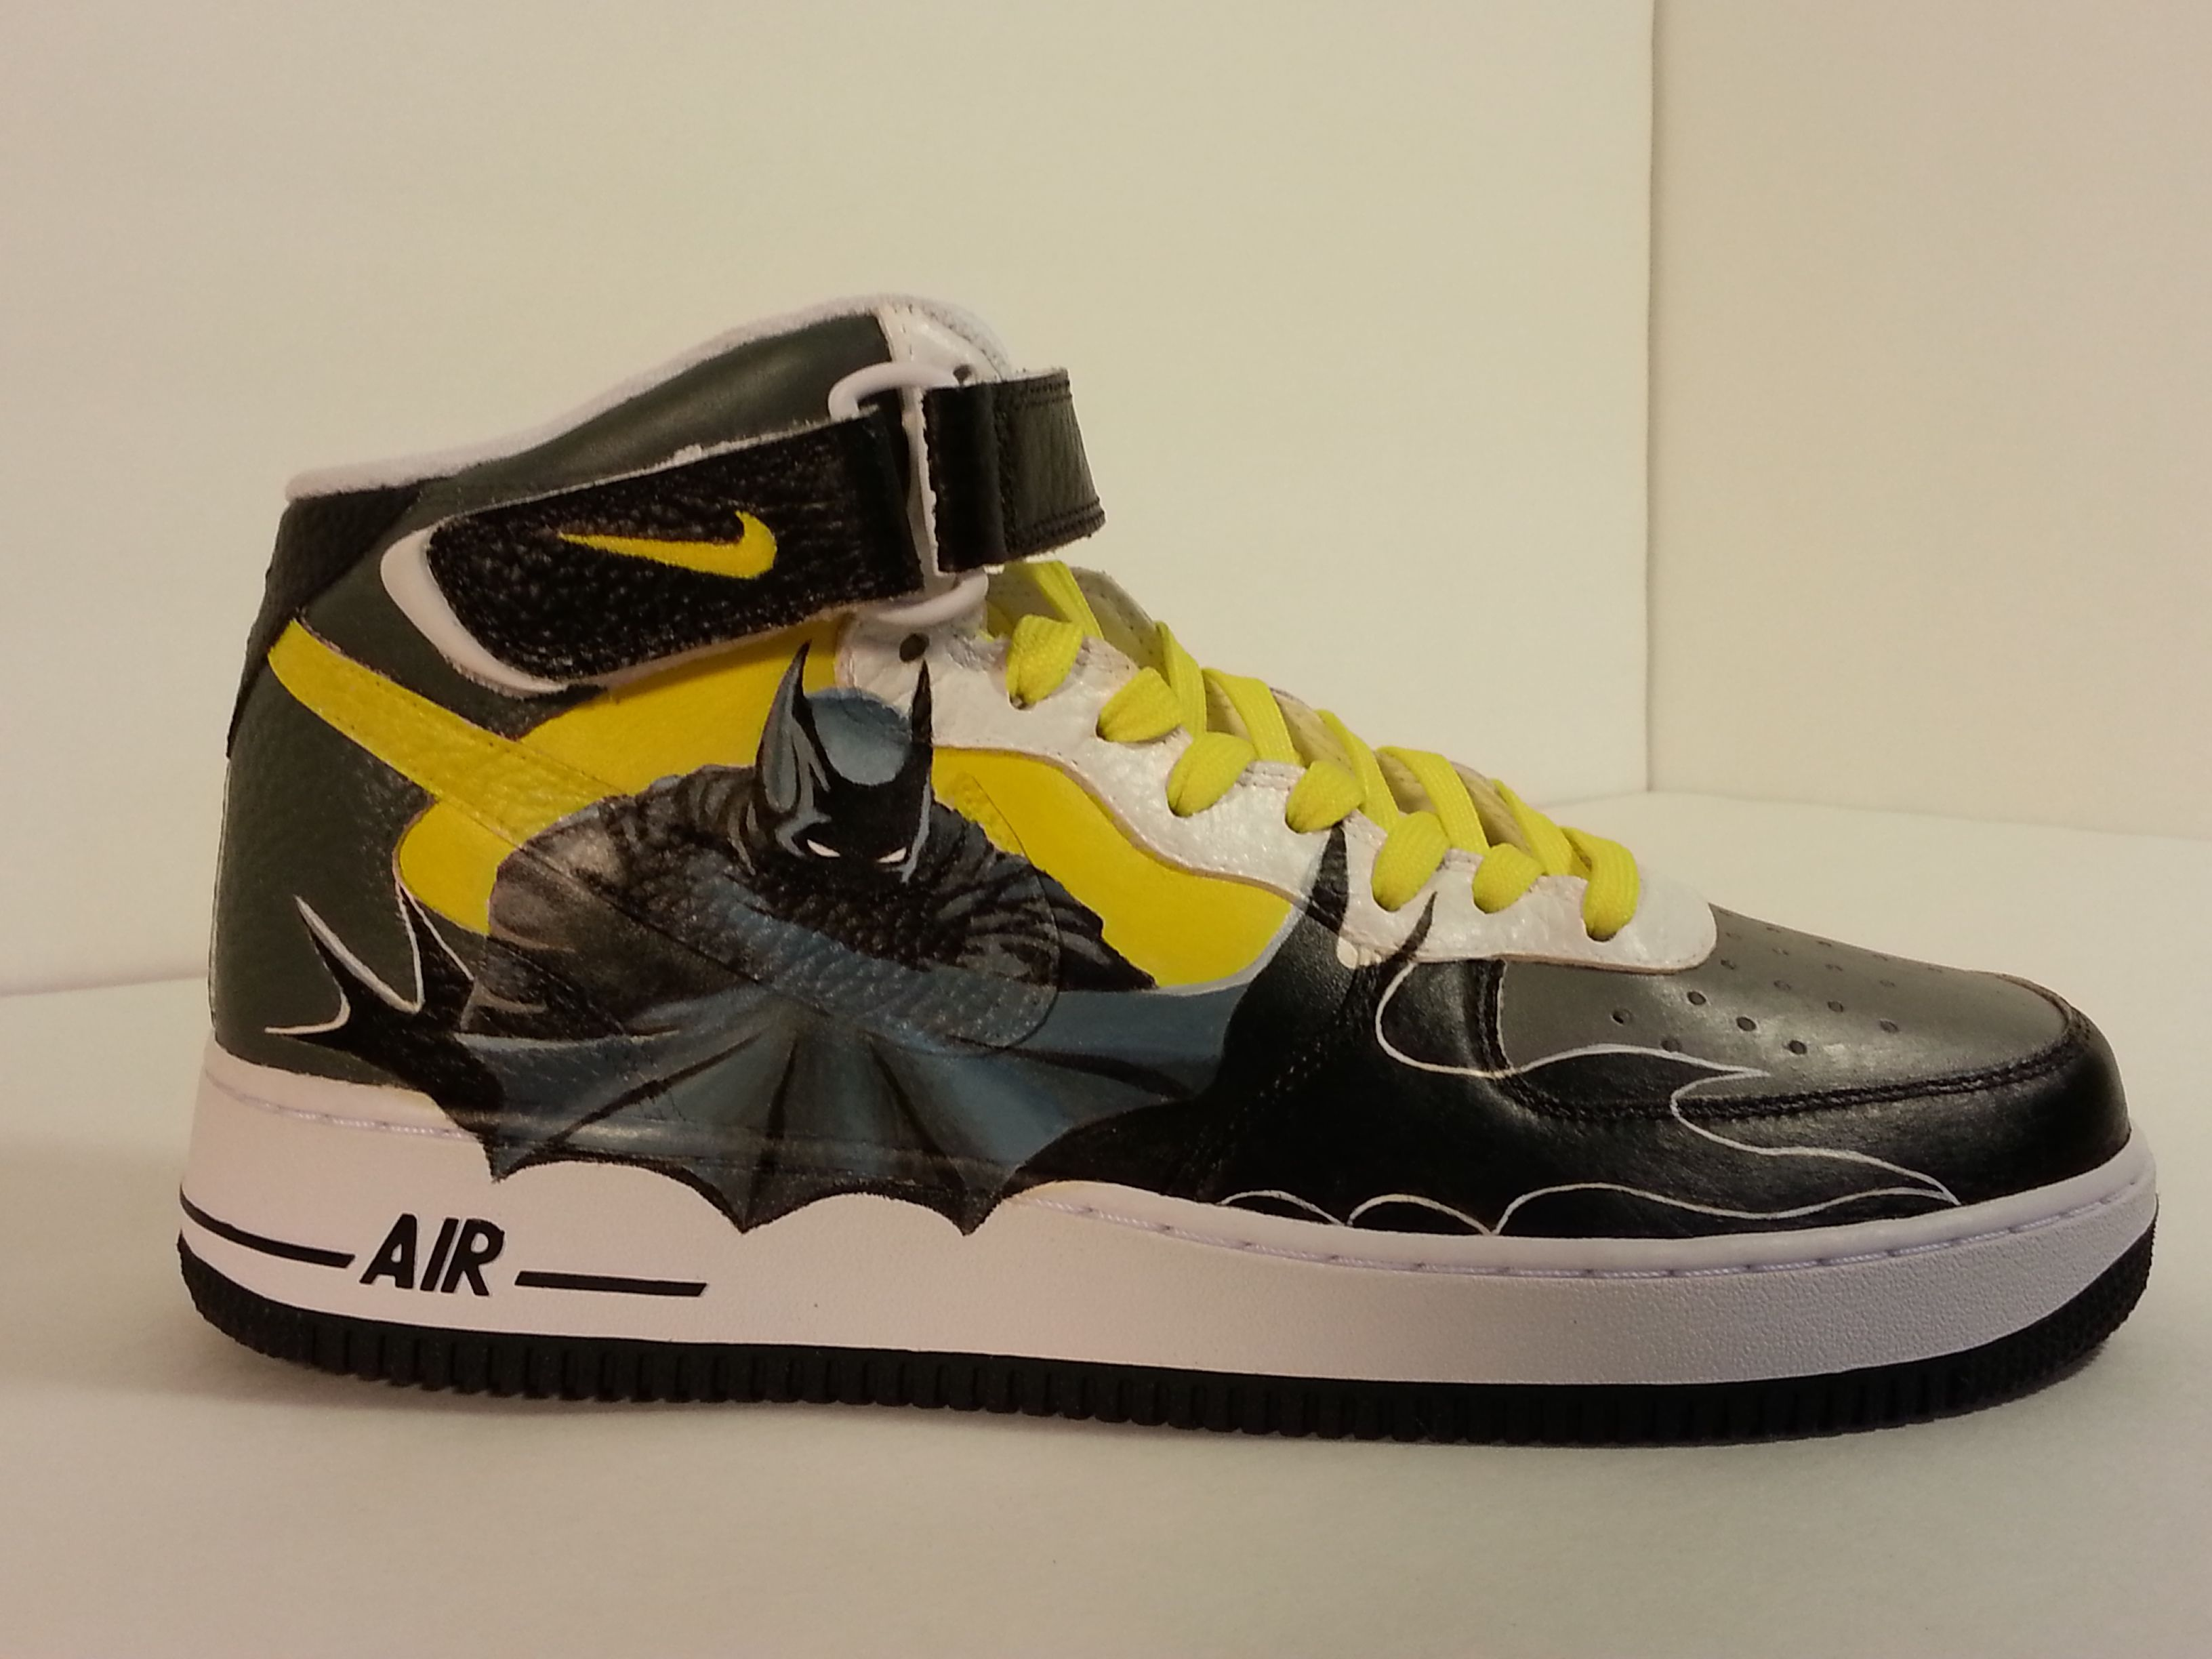 Batman Air Force Ones